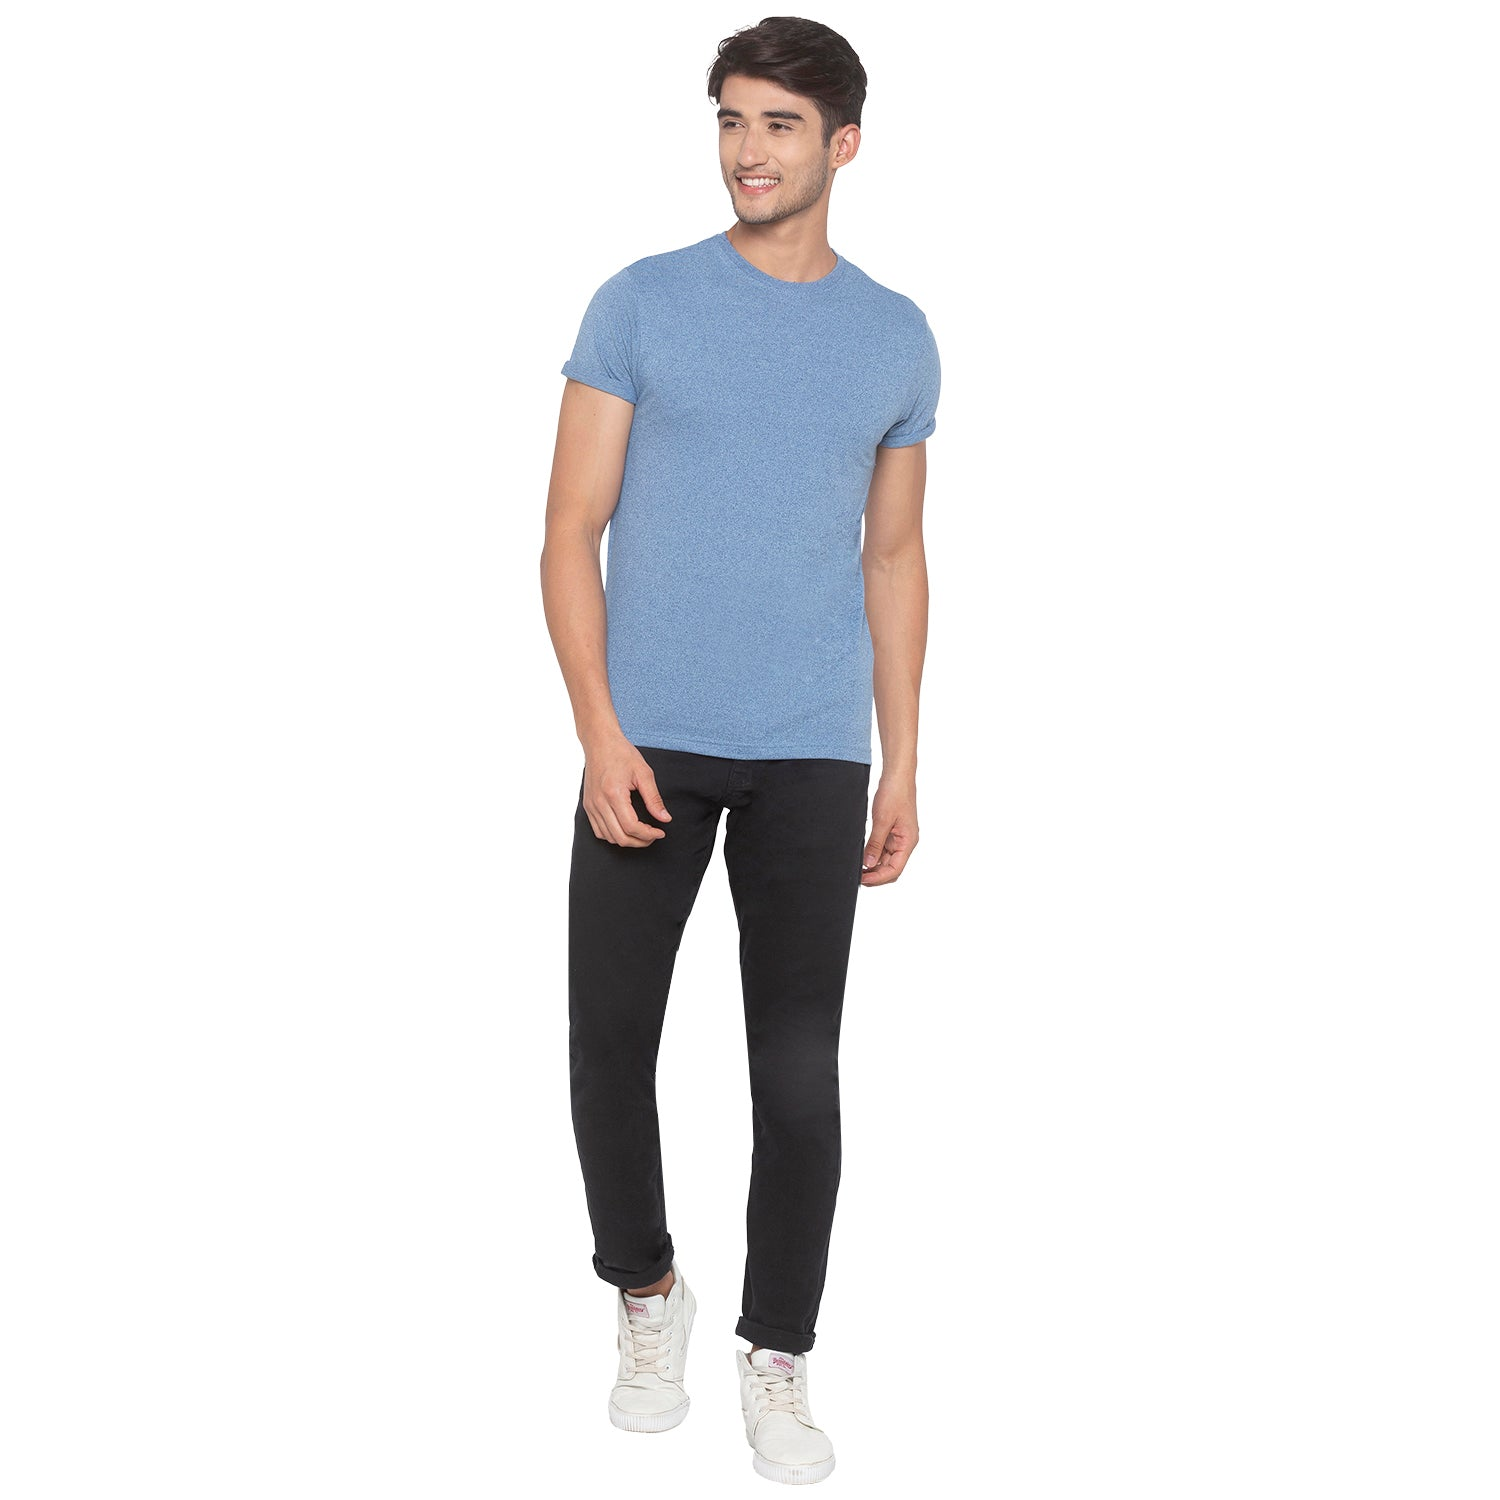 Indigo Blue Solid T-Shirt-4